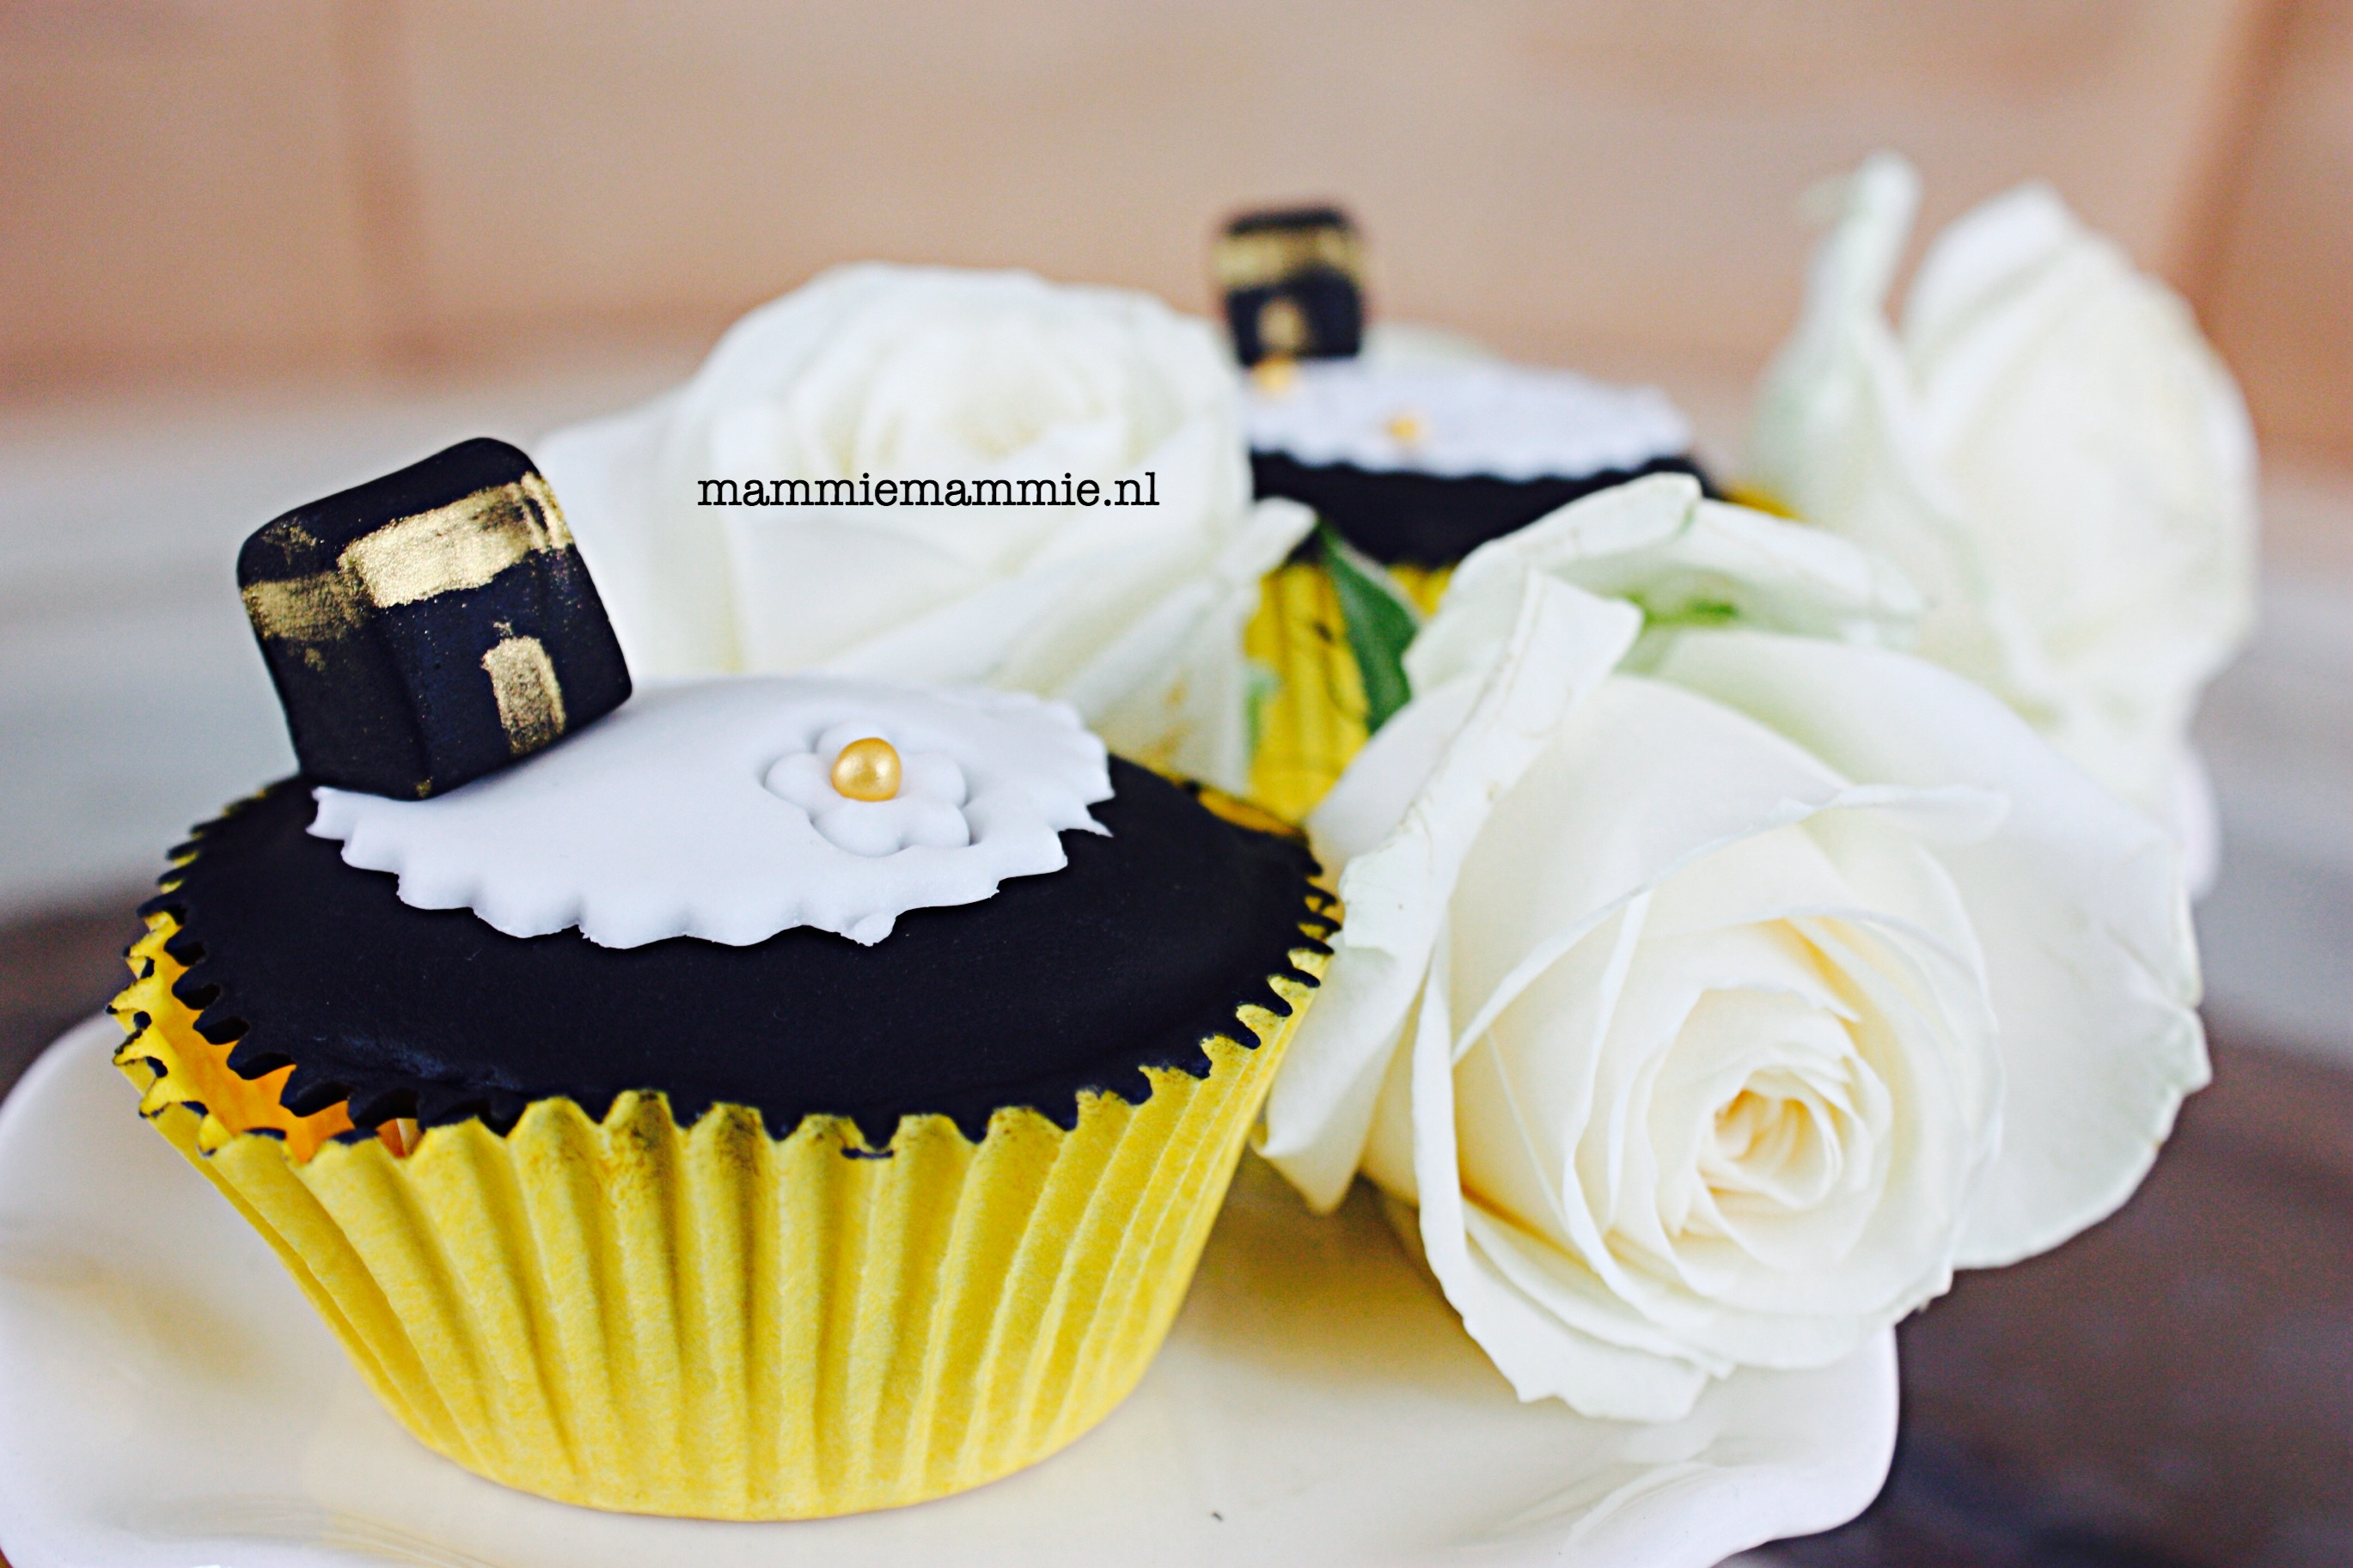 Hadj special hadj decoratie inspiratie en tips mammie for Decoratie cupcakes